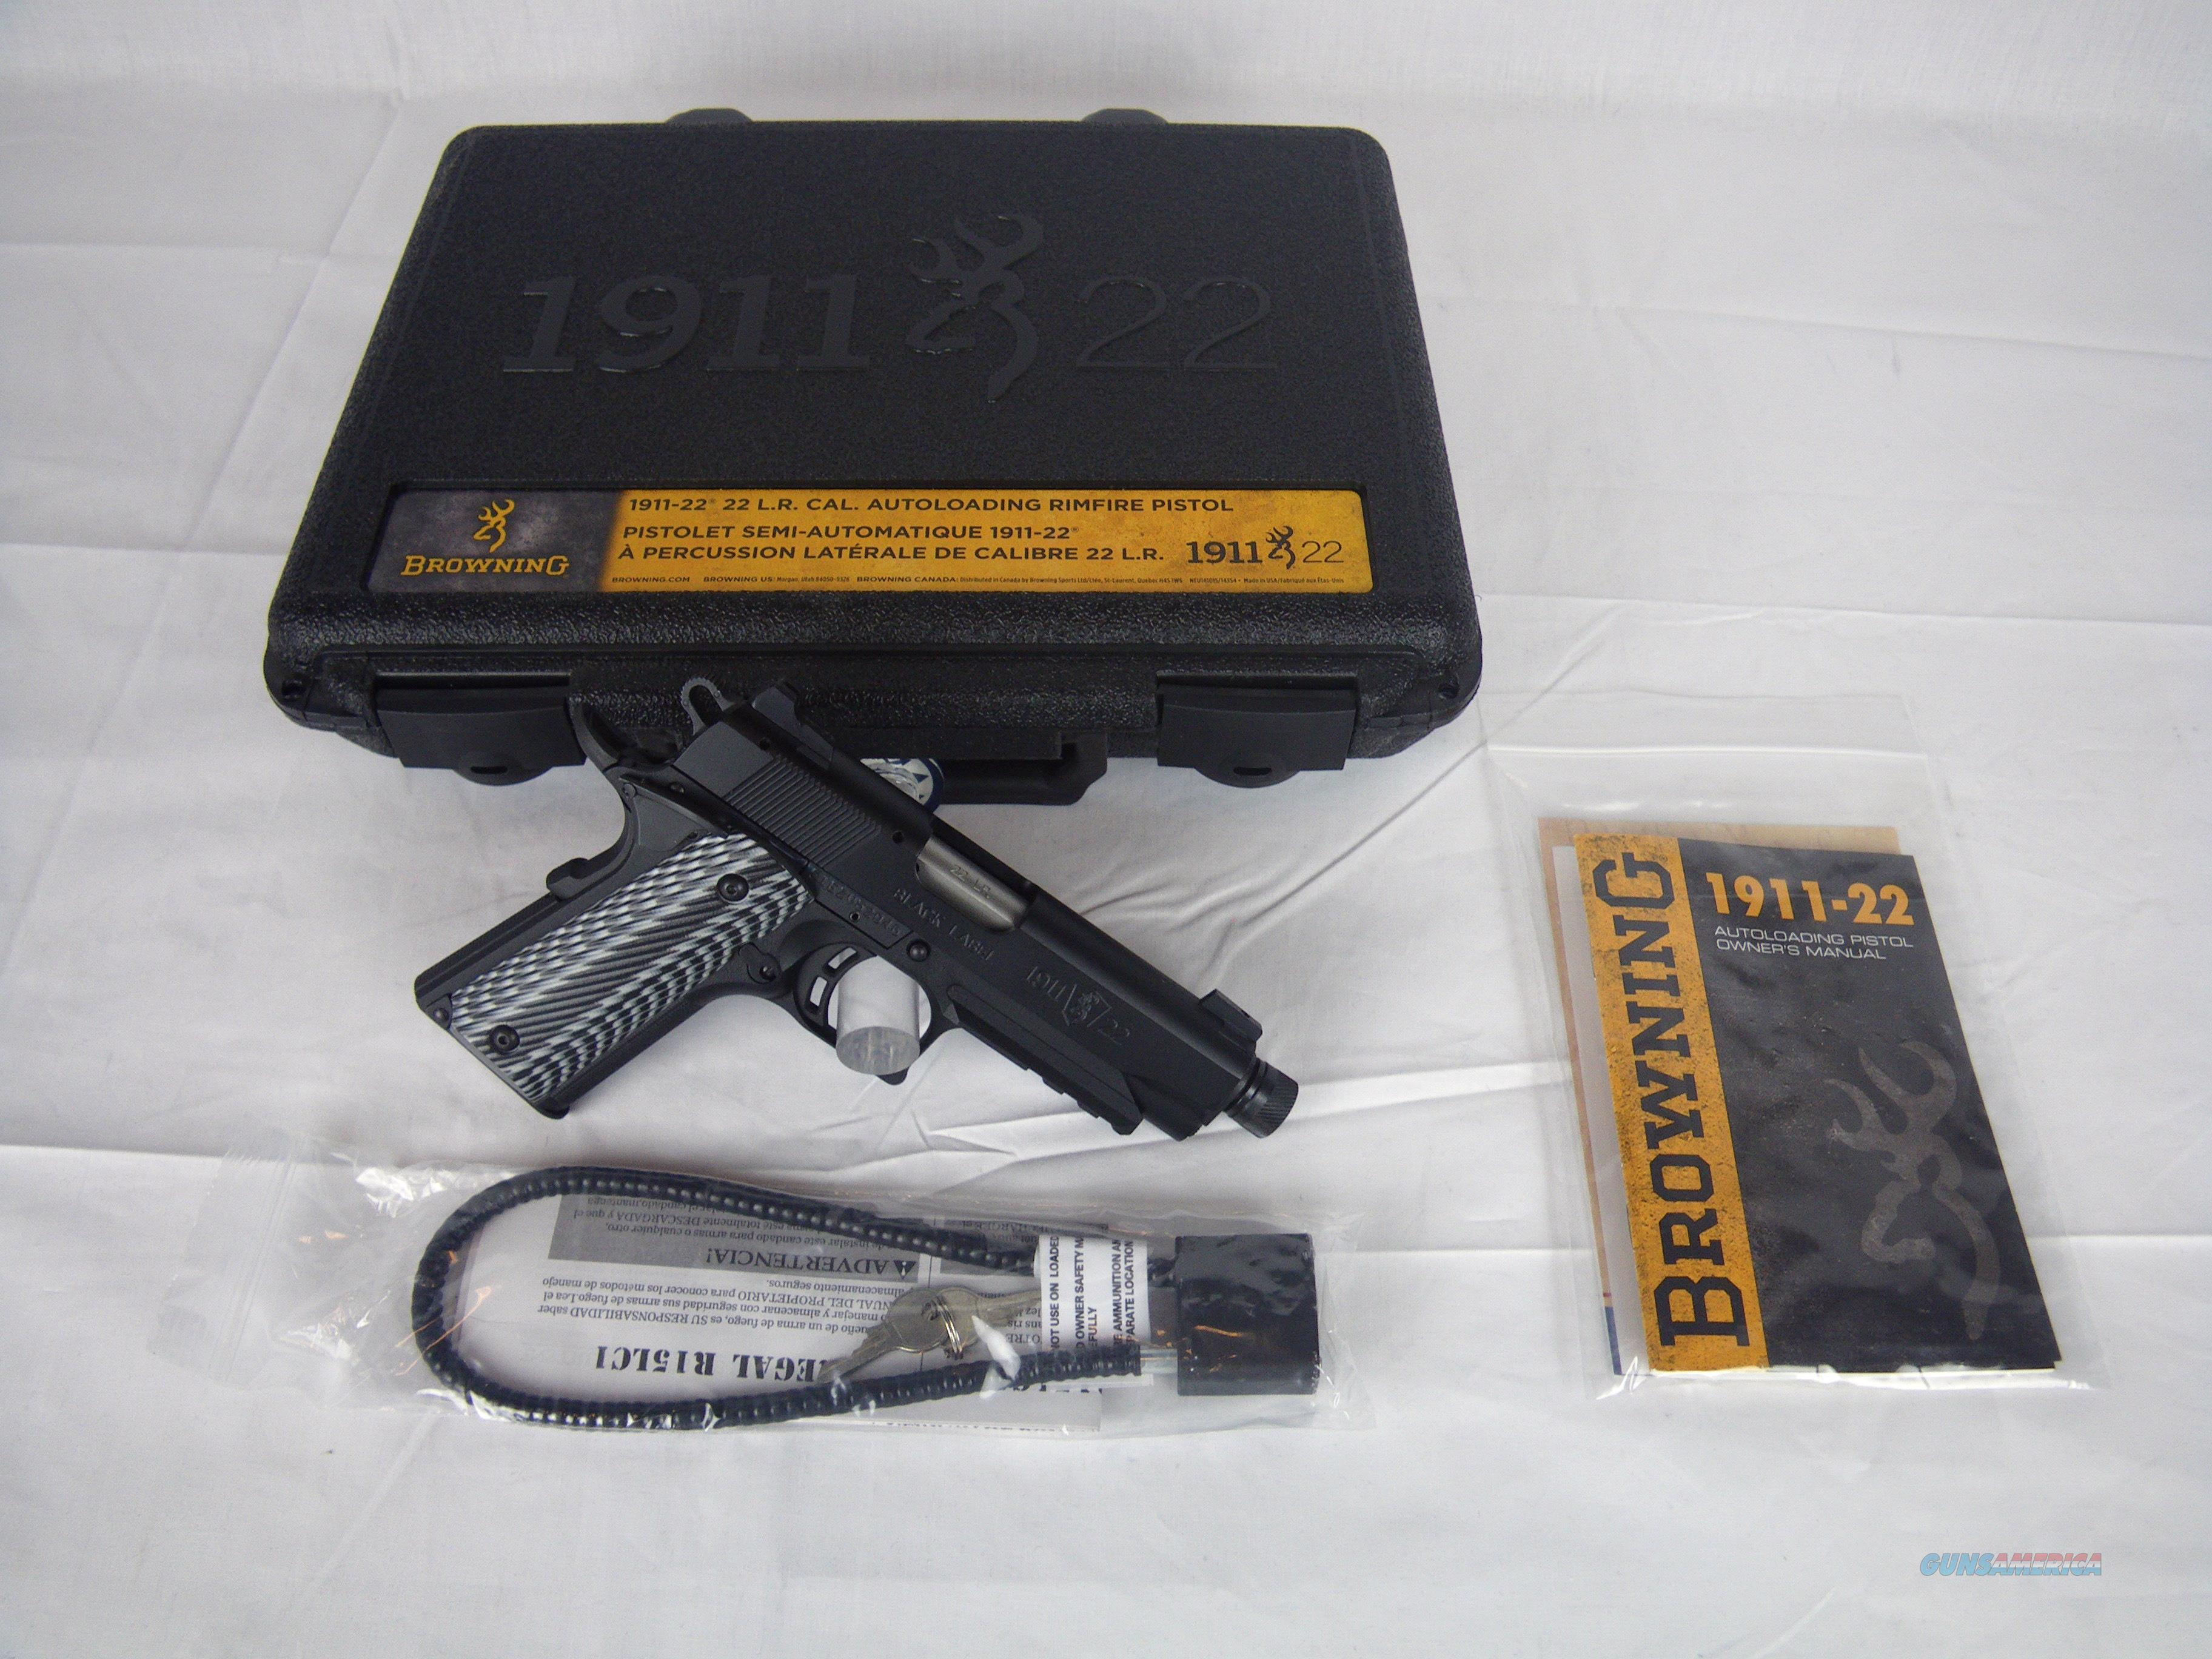 "Browning 1911-22 Black Label Threaded 22lr 4.25"" #051821490  Guns > Pistols > Browning Pistols > Other Autos"